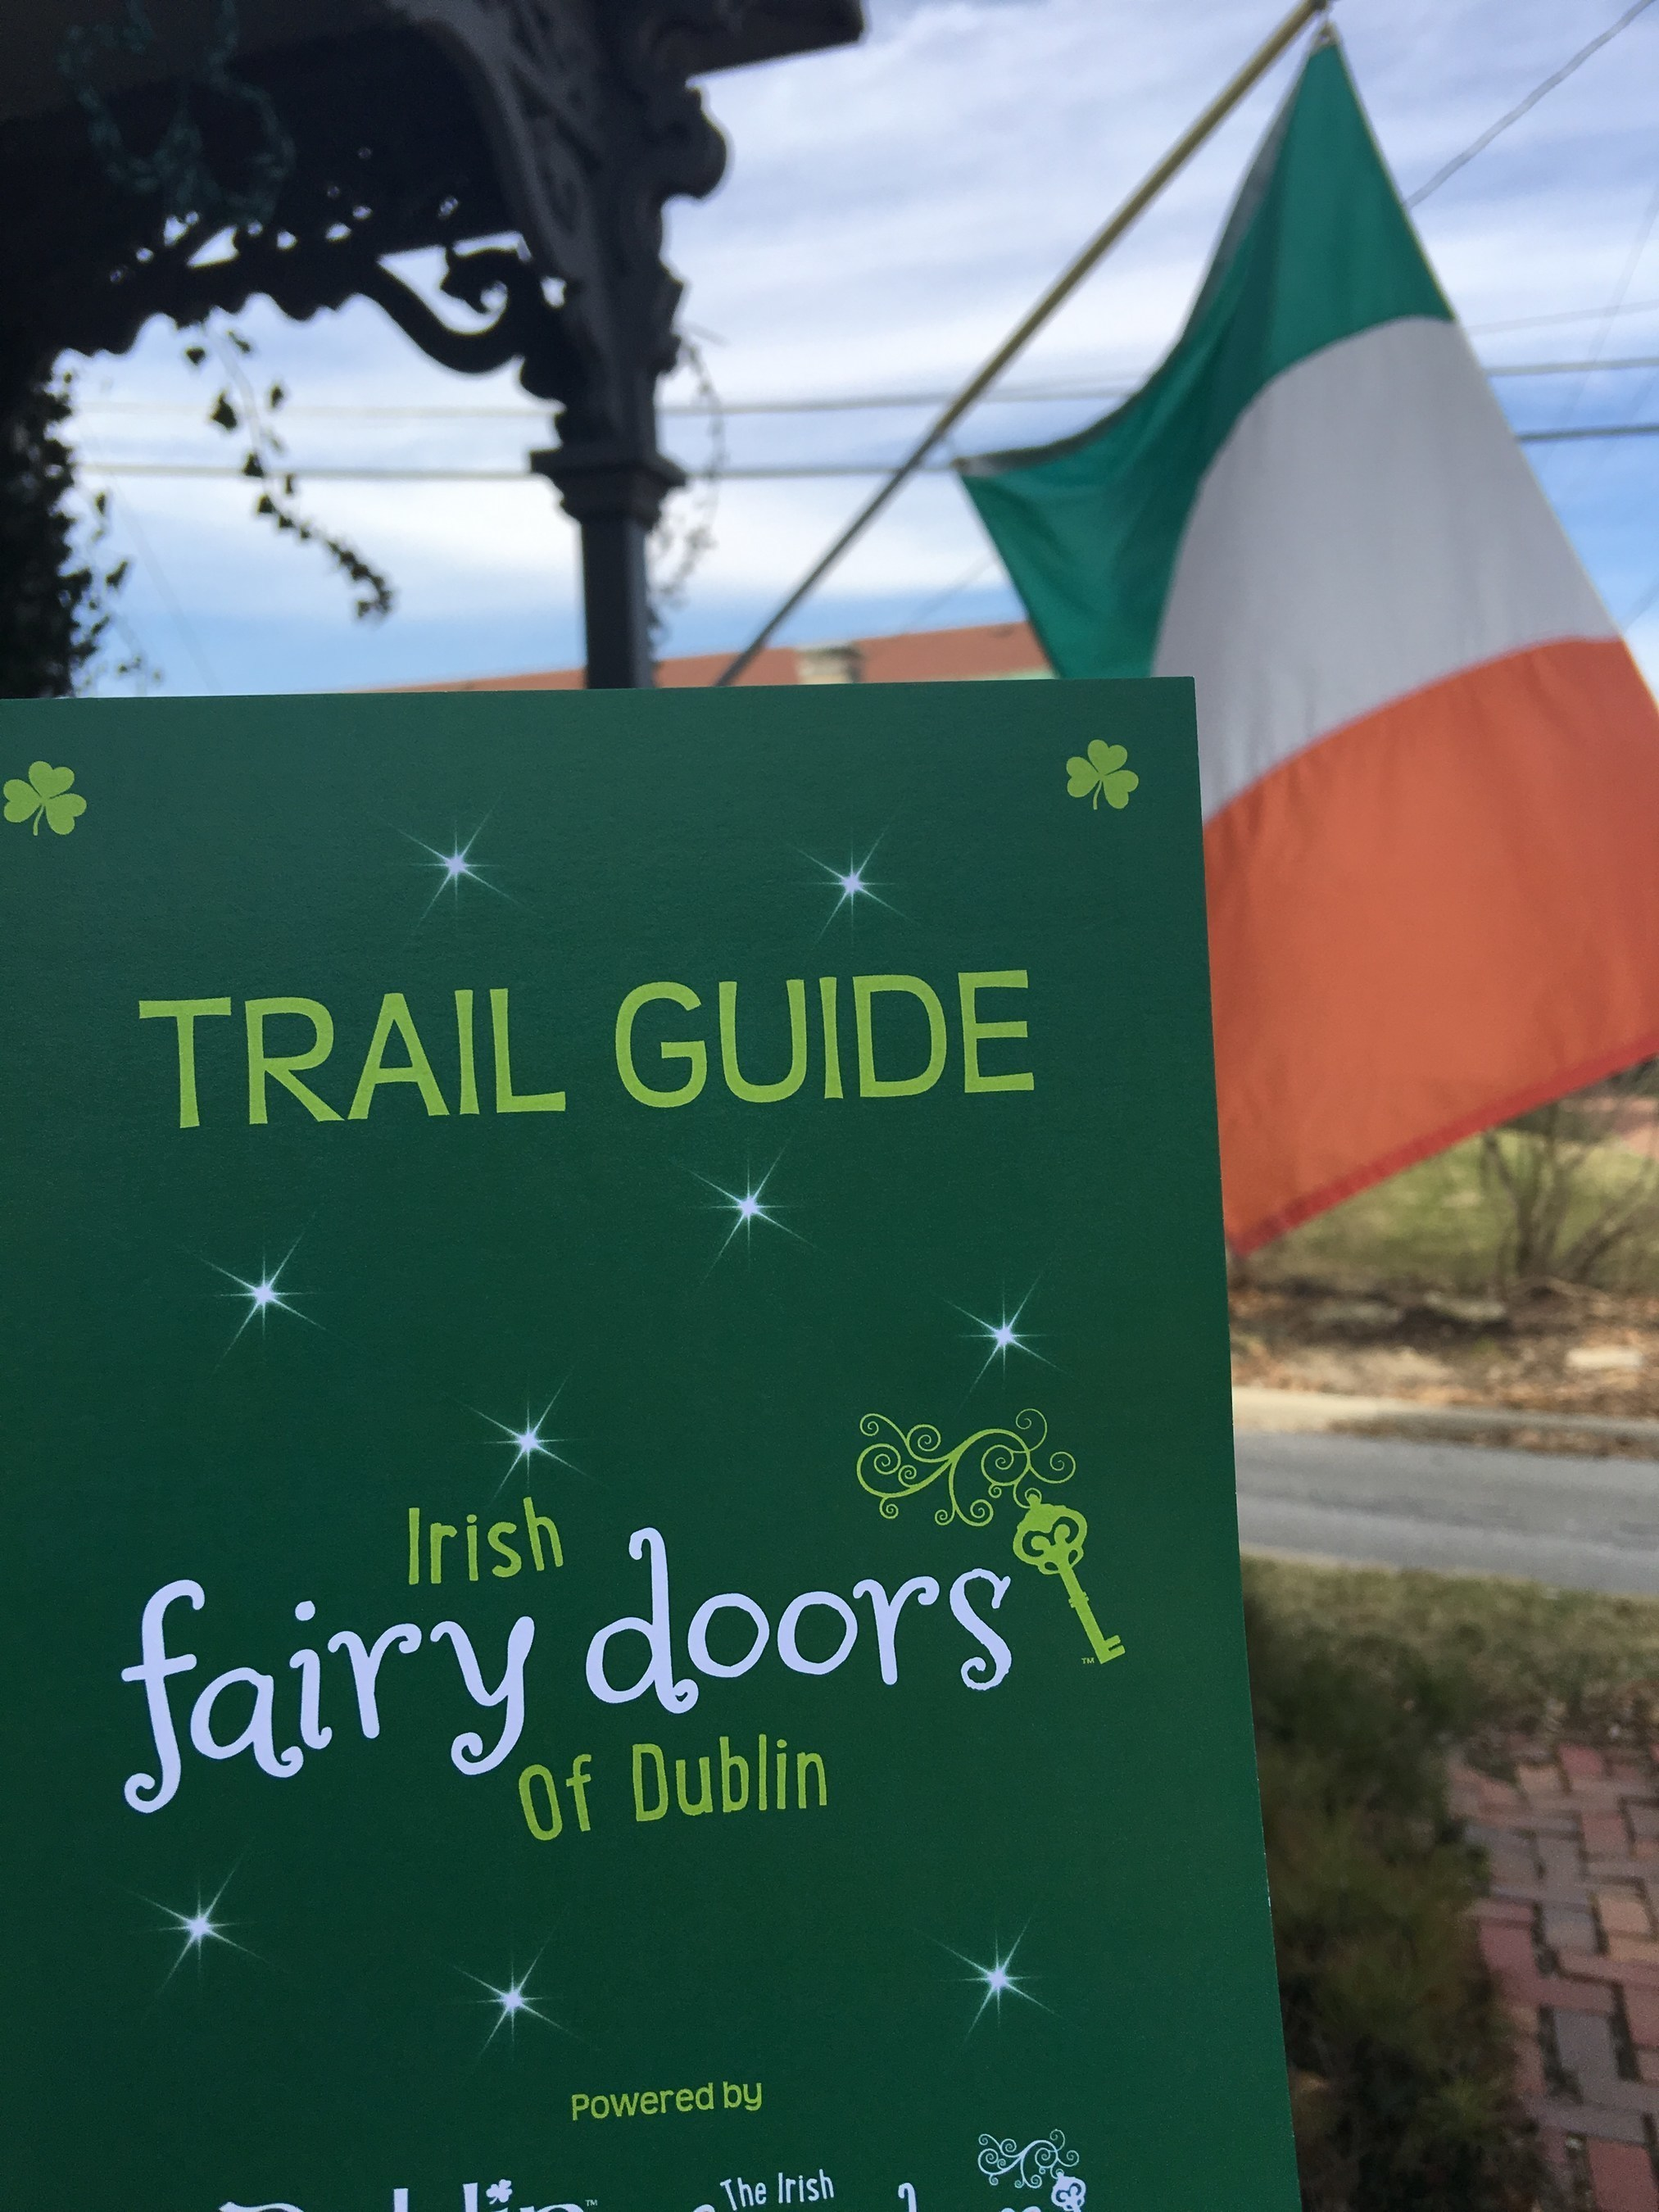 Dublin, Ohio Opens Nation's First Irish Fairy Door Trail